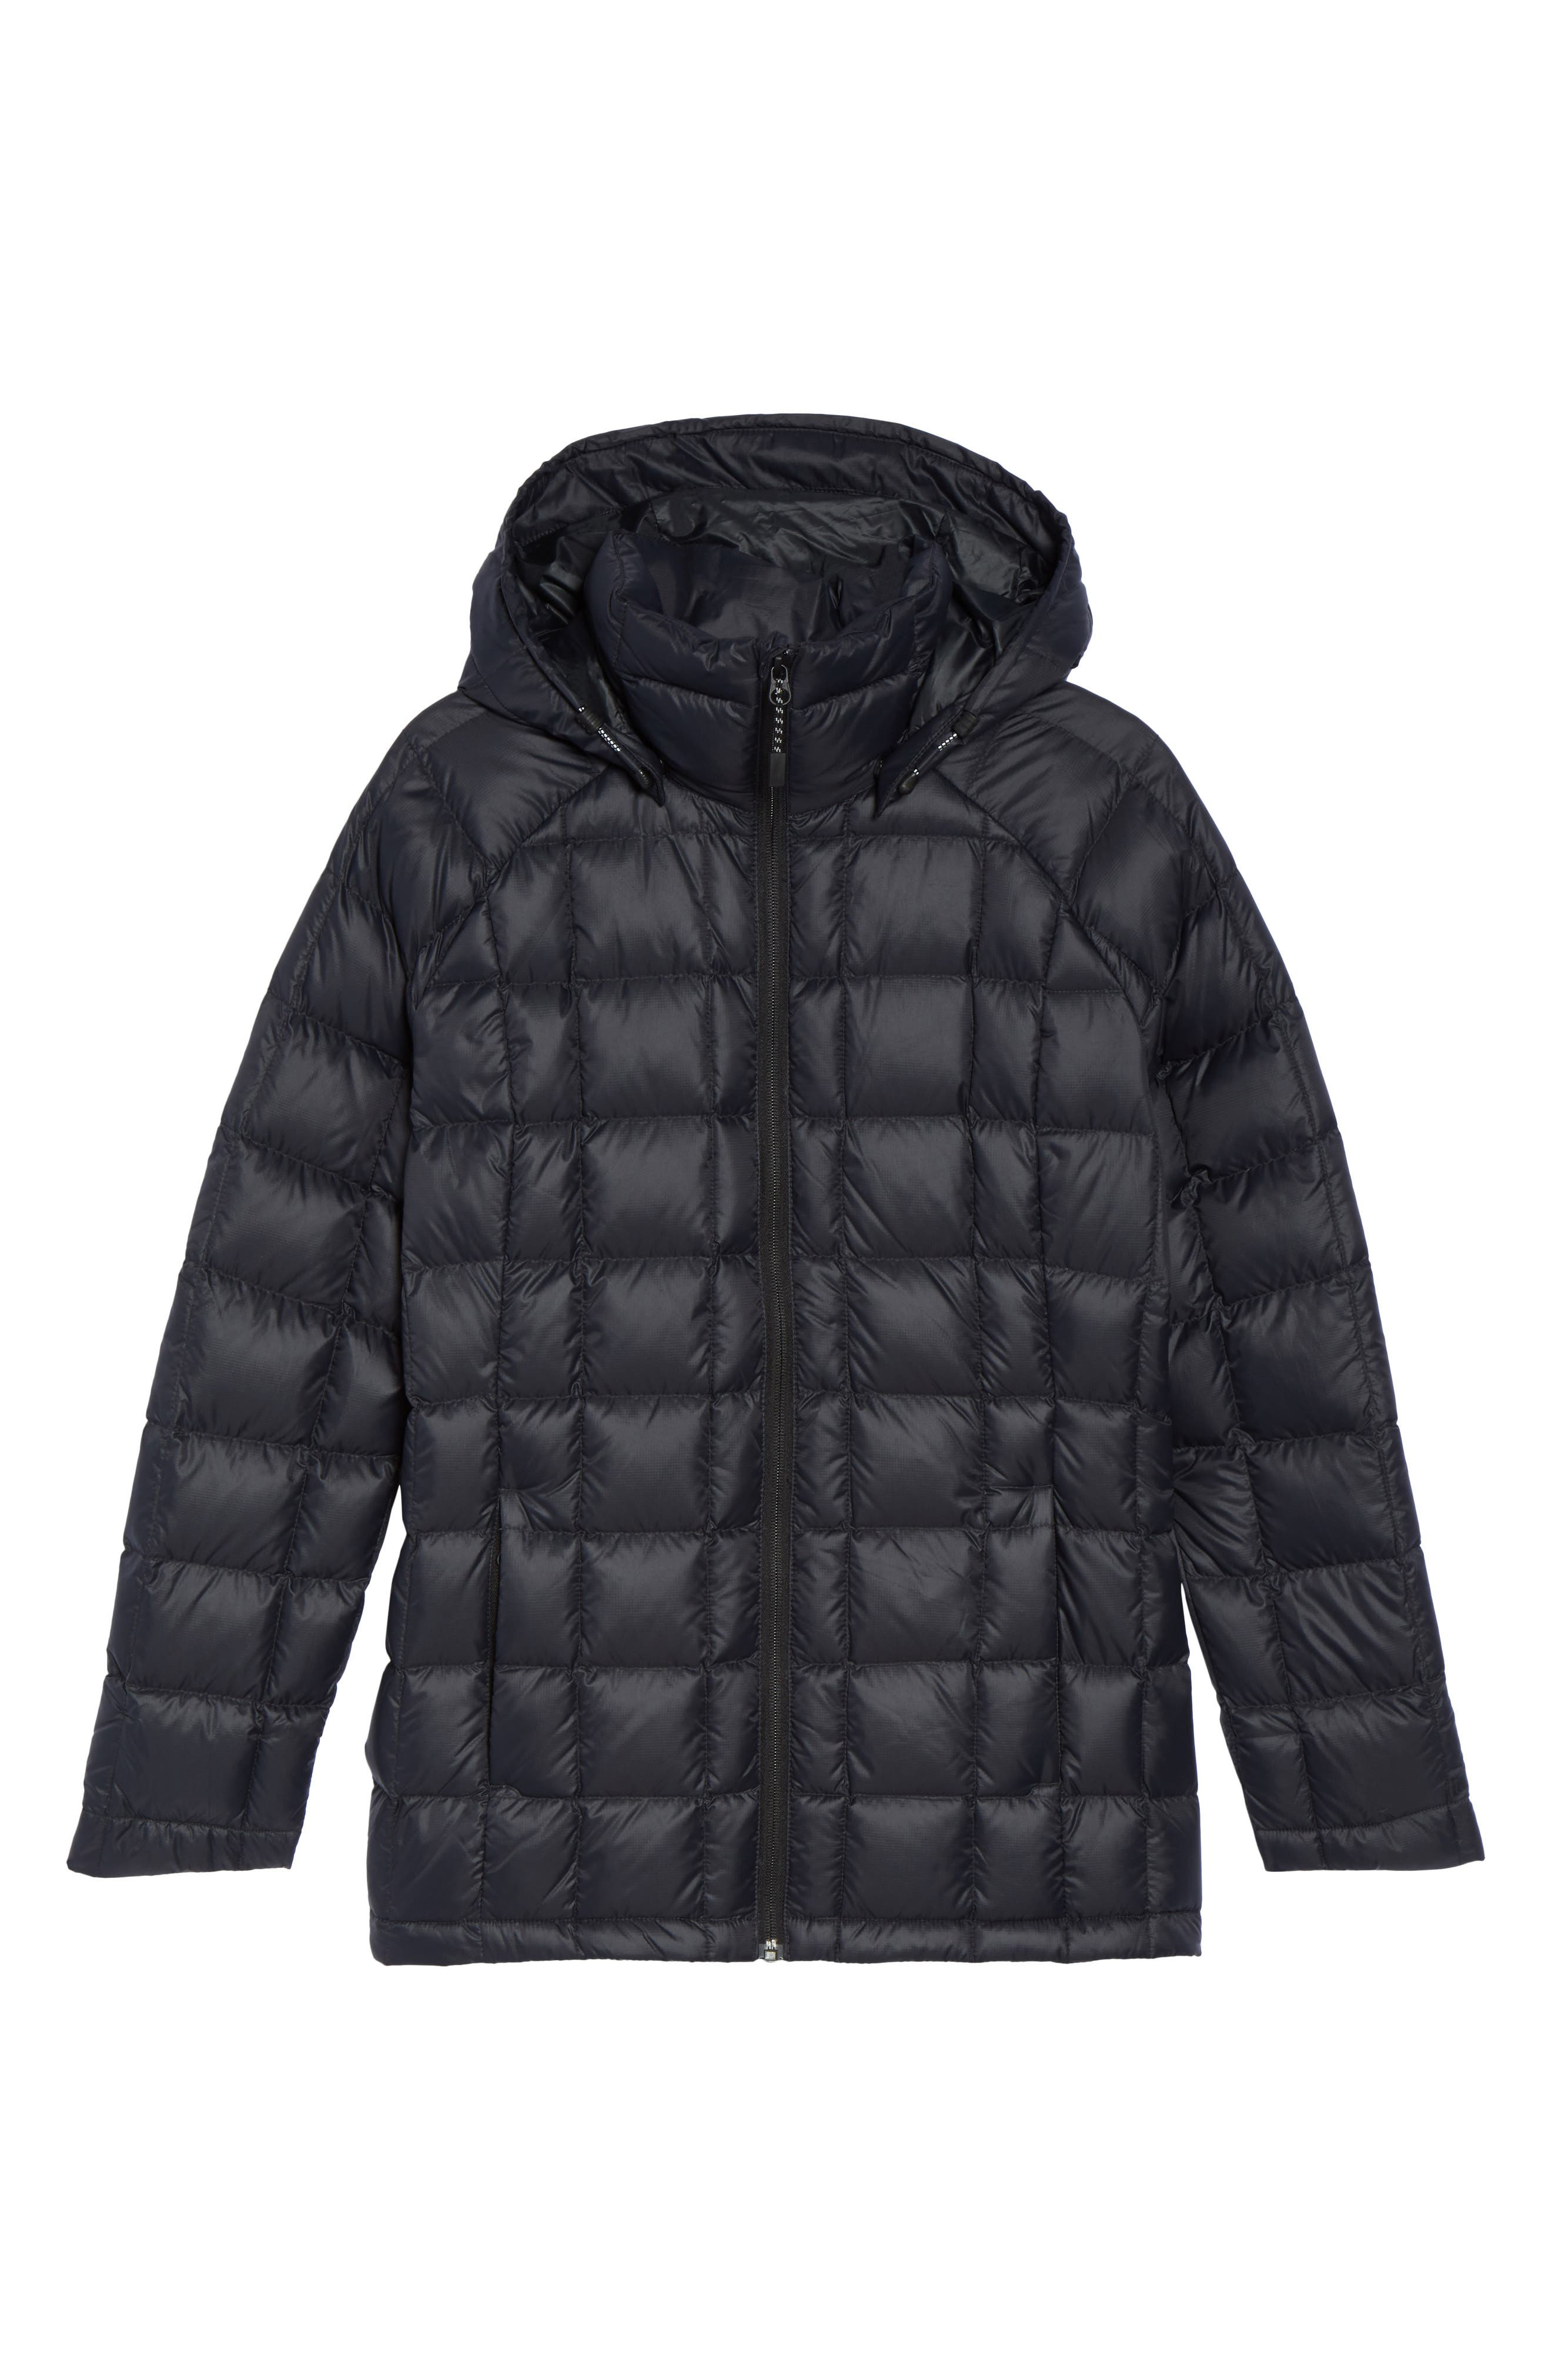 AK Baker Waterproof Quilted Down Insulator Jacket with Removable Hood,                             Alternate thumbnail 6, color,                             001